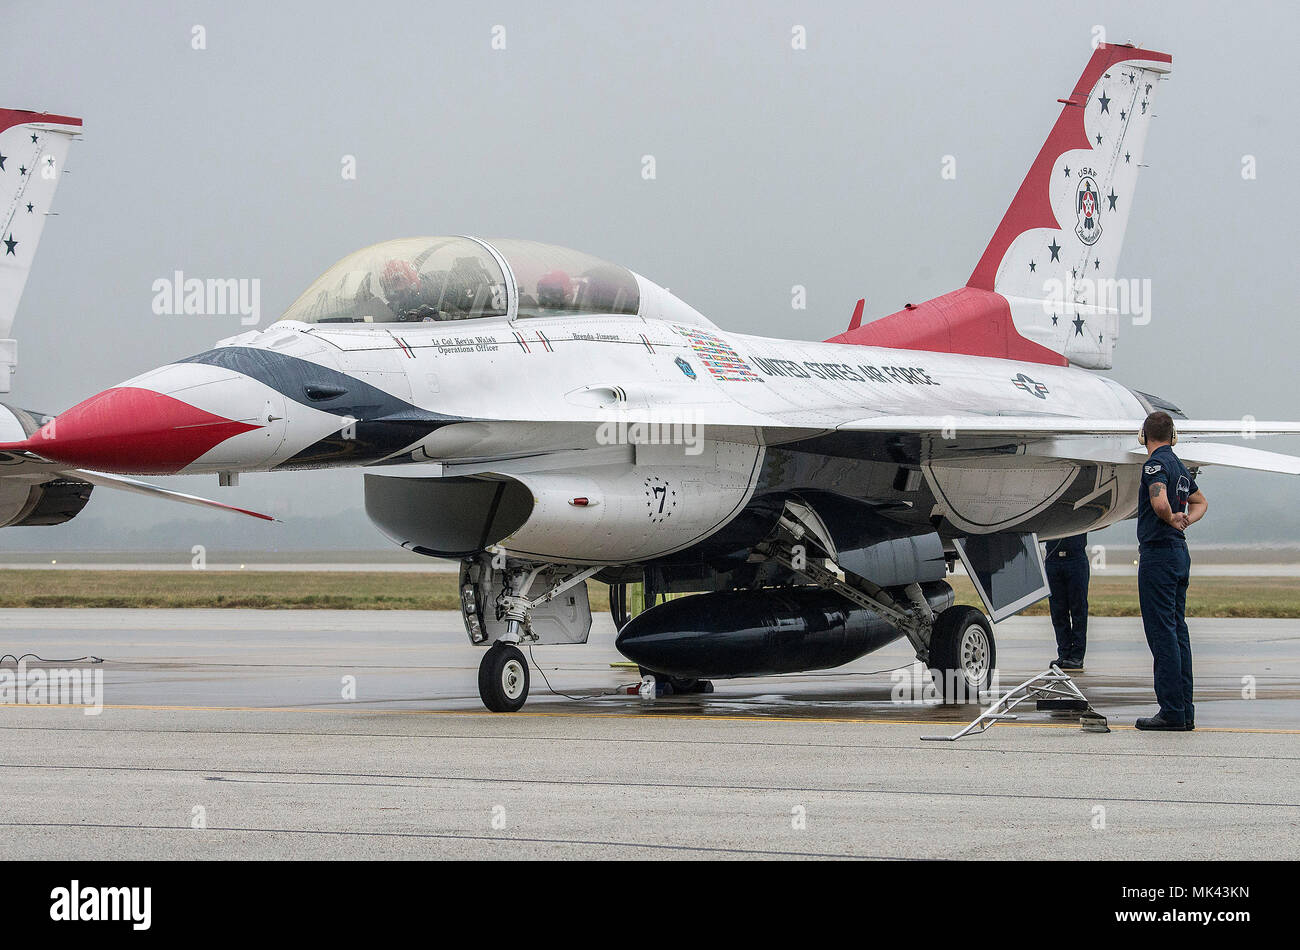 bbe79179 Kevin Walsh, U.S. Air Force Aerial Demonstration Squadron pilot Thunderbird  #